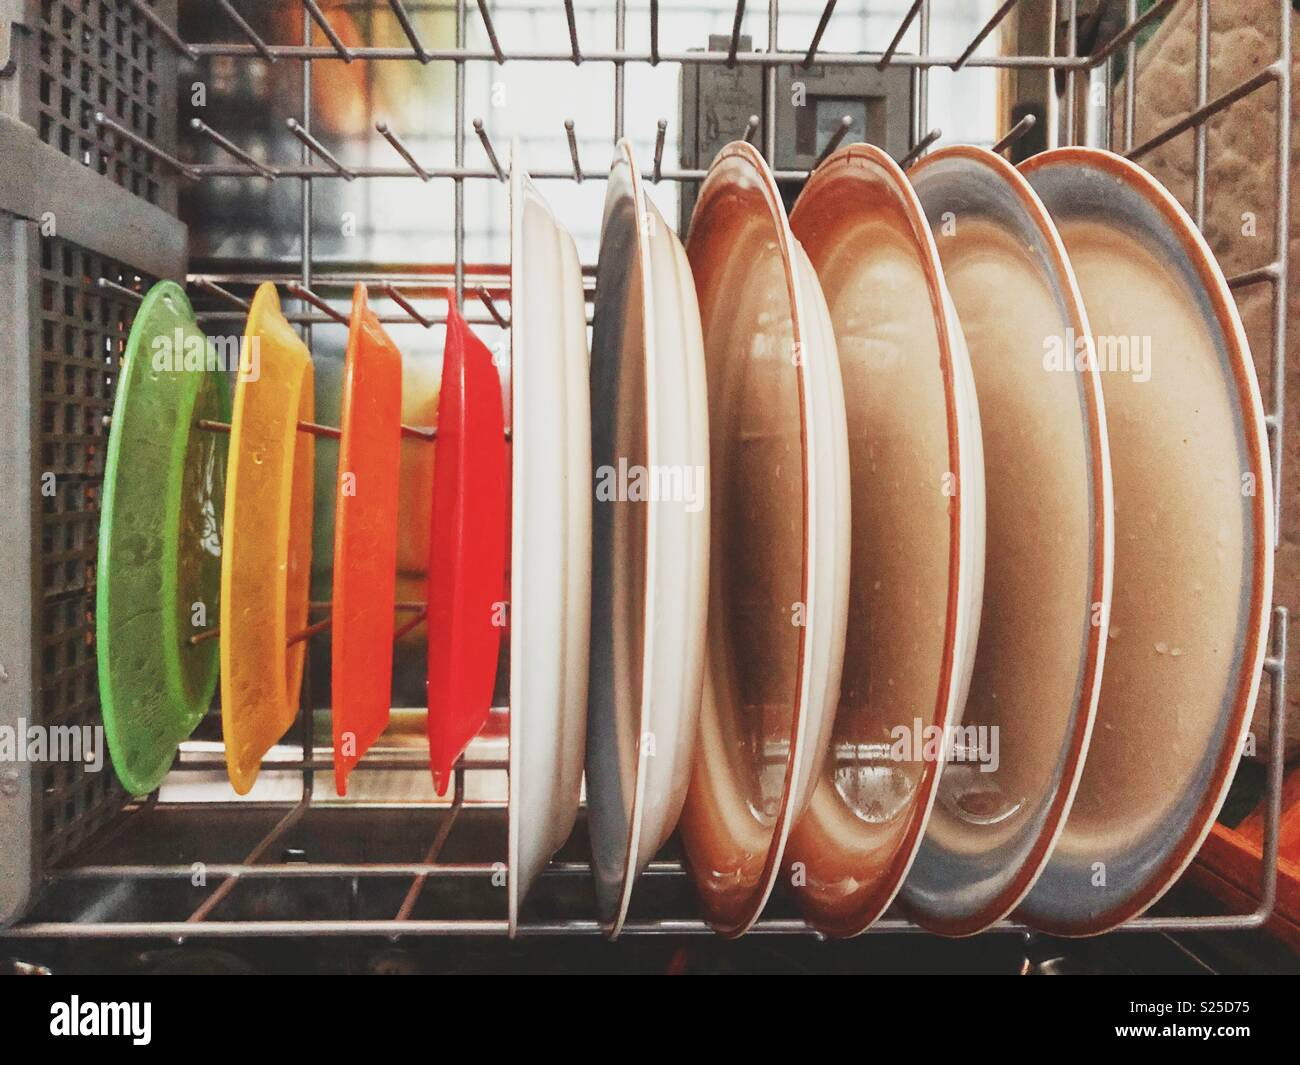 Row of colourful plastic childrenu0027s plates and full size ceramic plates in a dishwasher & Row of colourful plastic childrenu0027s plates and full size ceramic ...